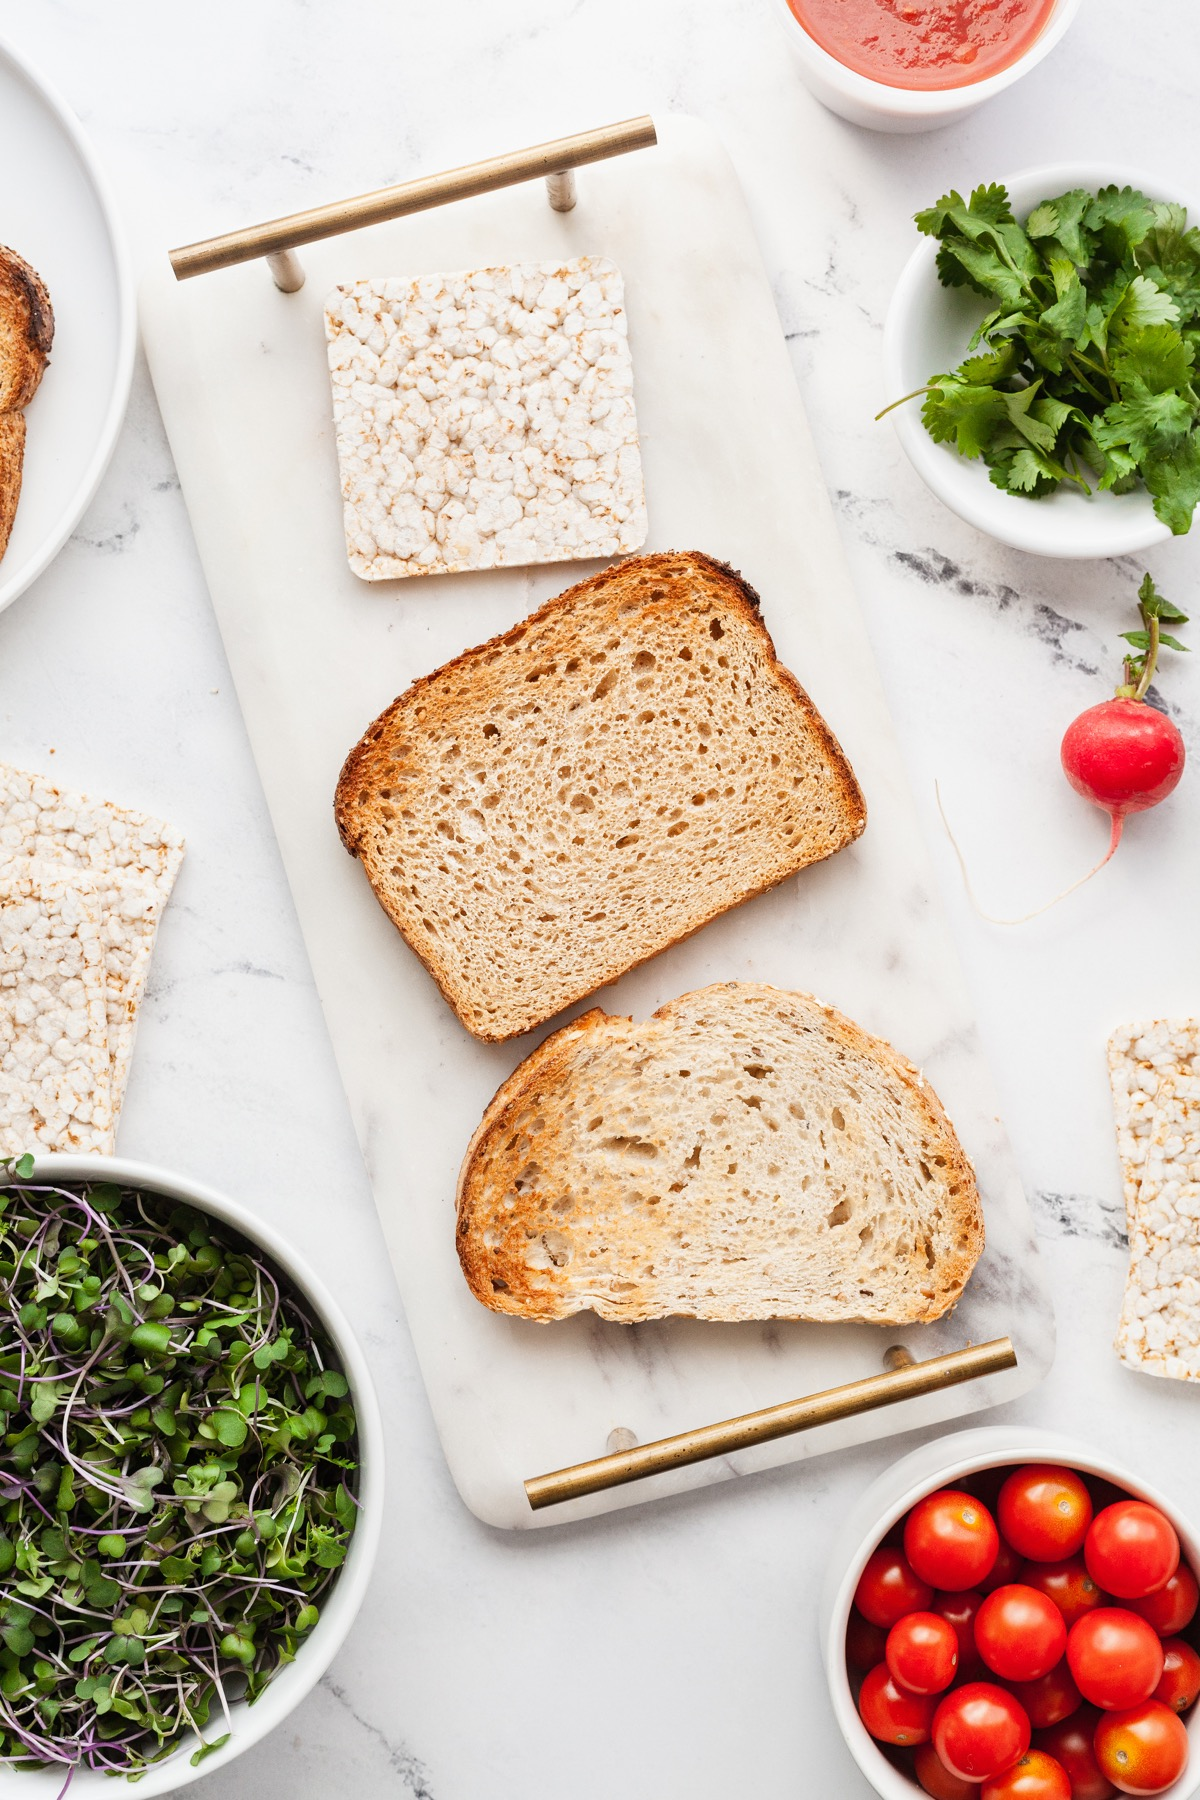 three slices of bread surrounded by veggies